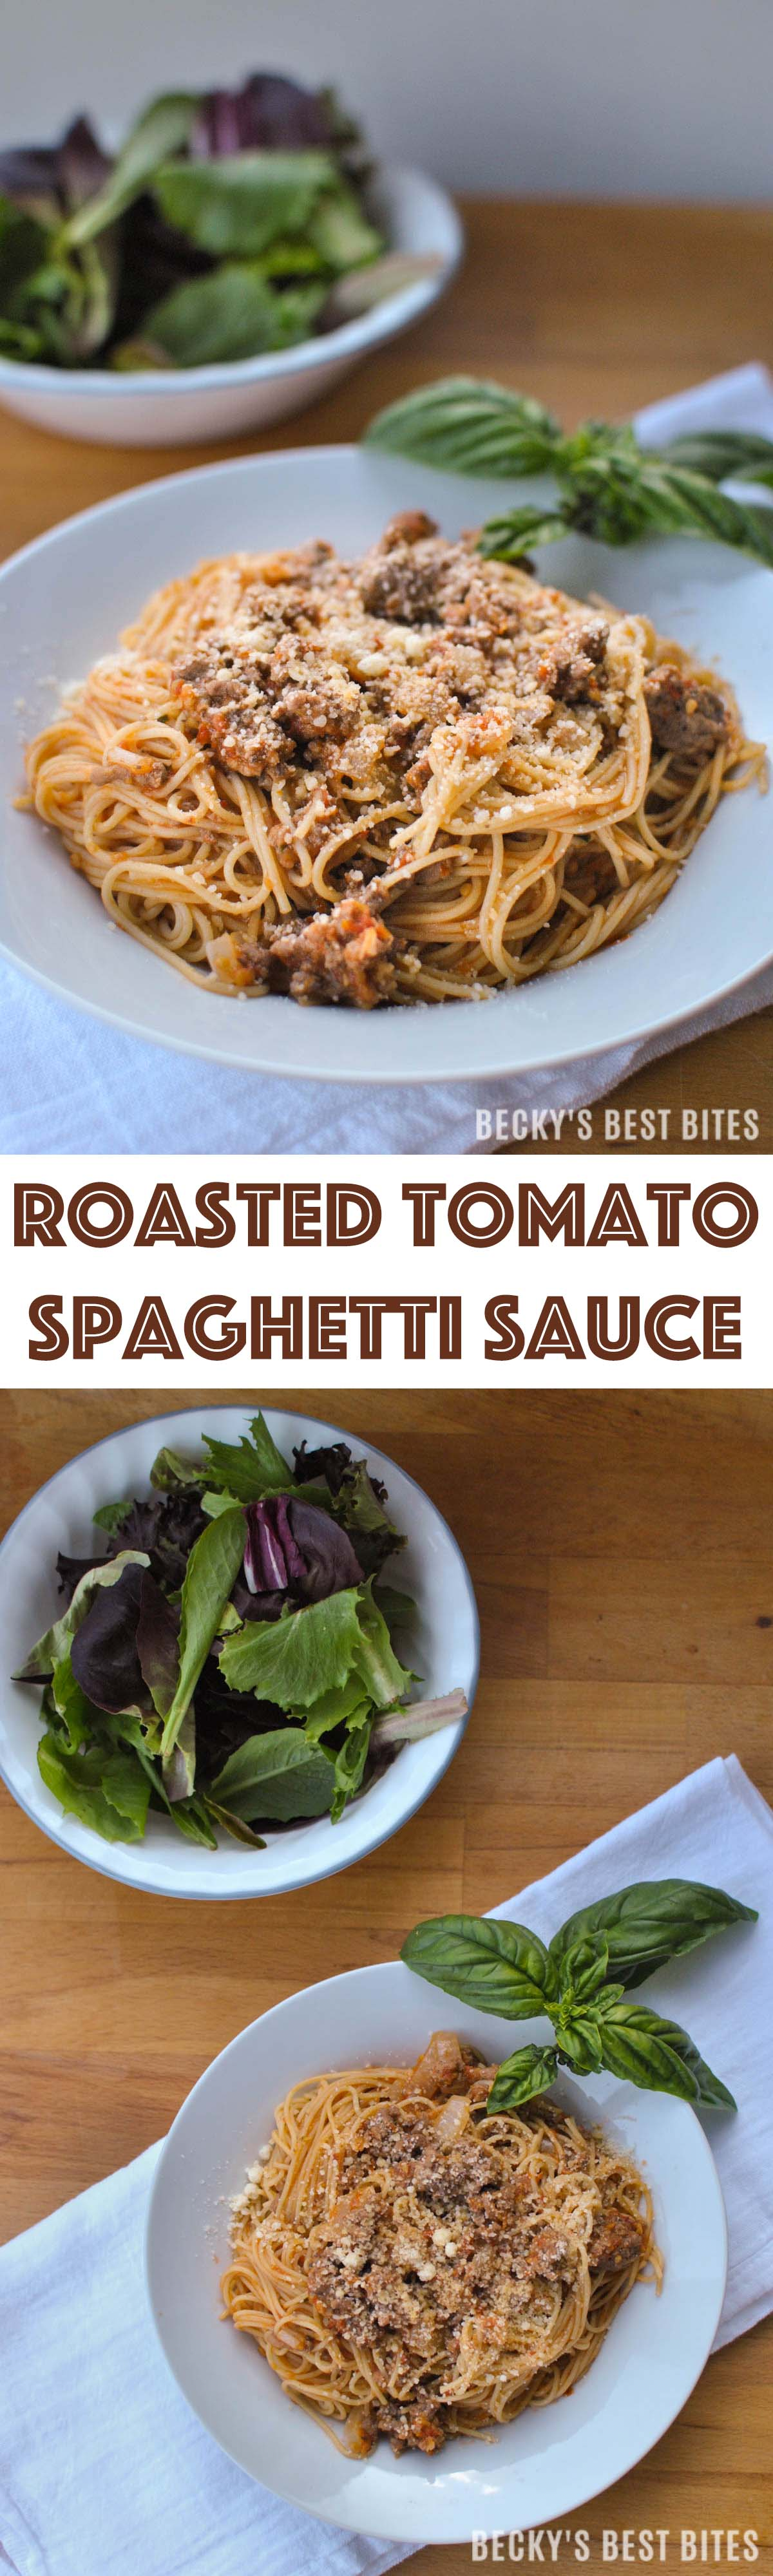 Roasted Tomato Spaghetti Sauce is a dinner recipe for the easiest homemade healthy pasta sauce. Make a meal out of the tomatoes overflowing from your garden. Becky's Best Bites